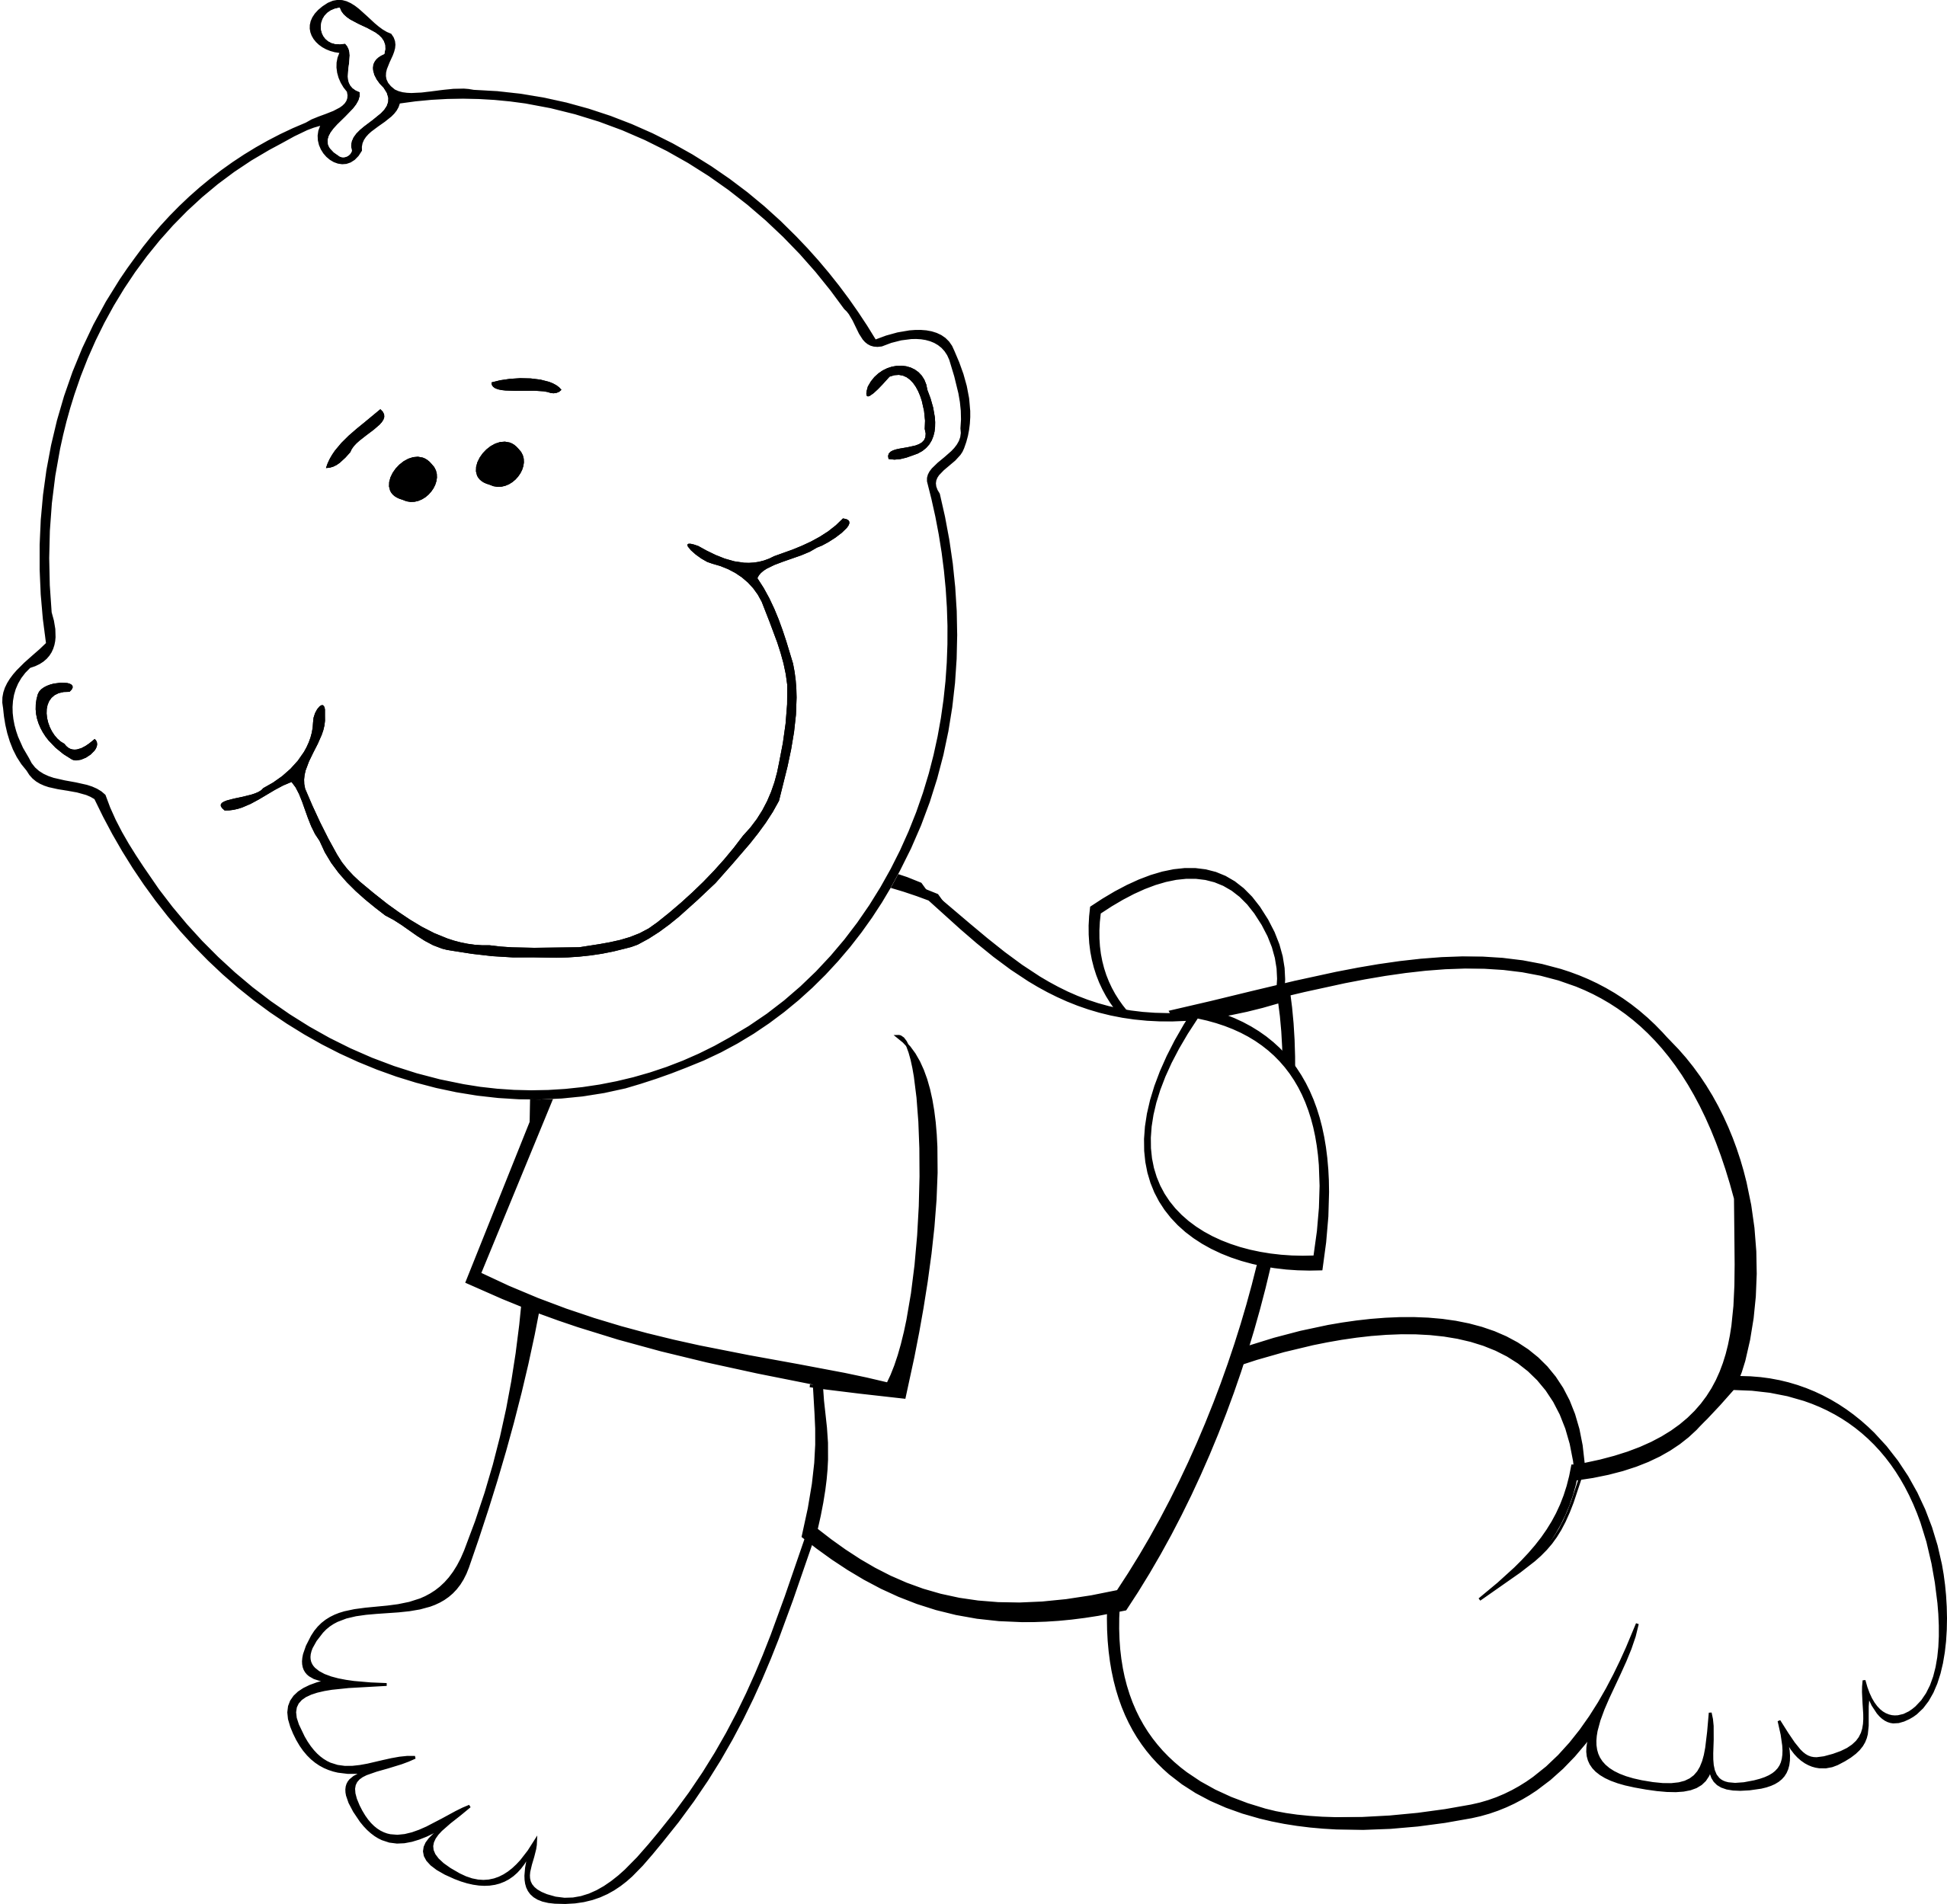 Black and white baby boy with crown clipart clip black and white stock 28+ Collection of Black And White Baby Clipart | High quality, free ... clip black and white stock